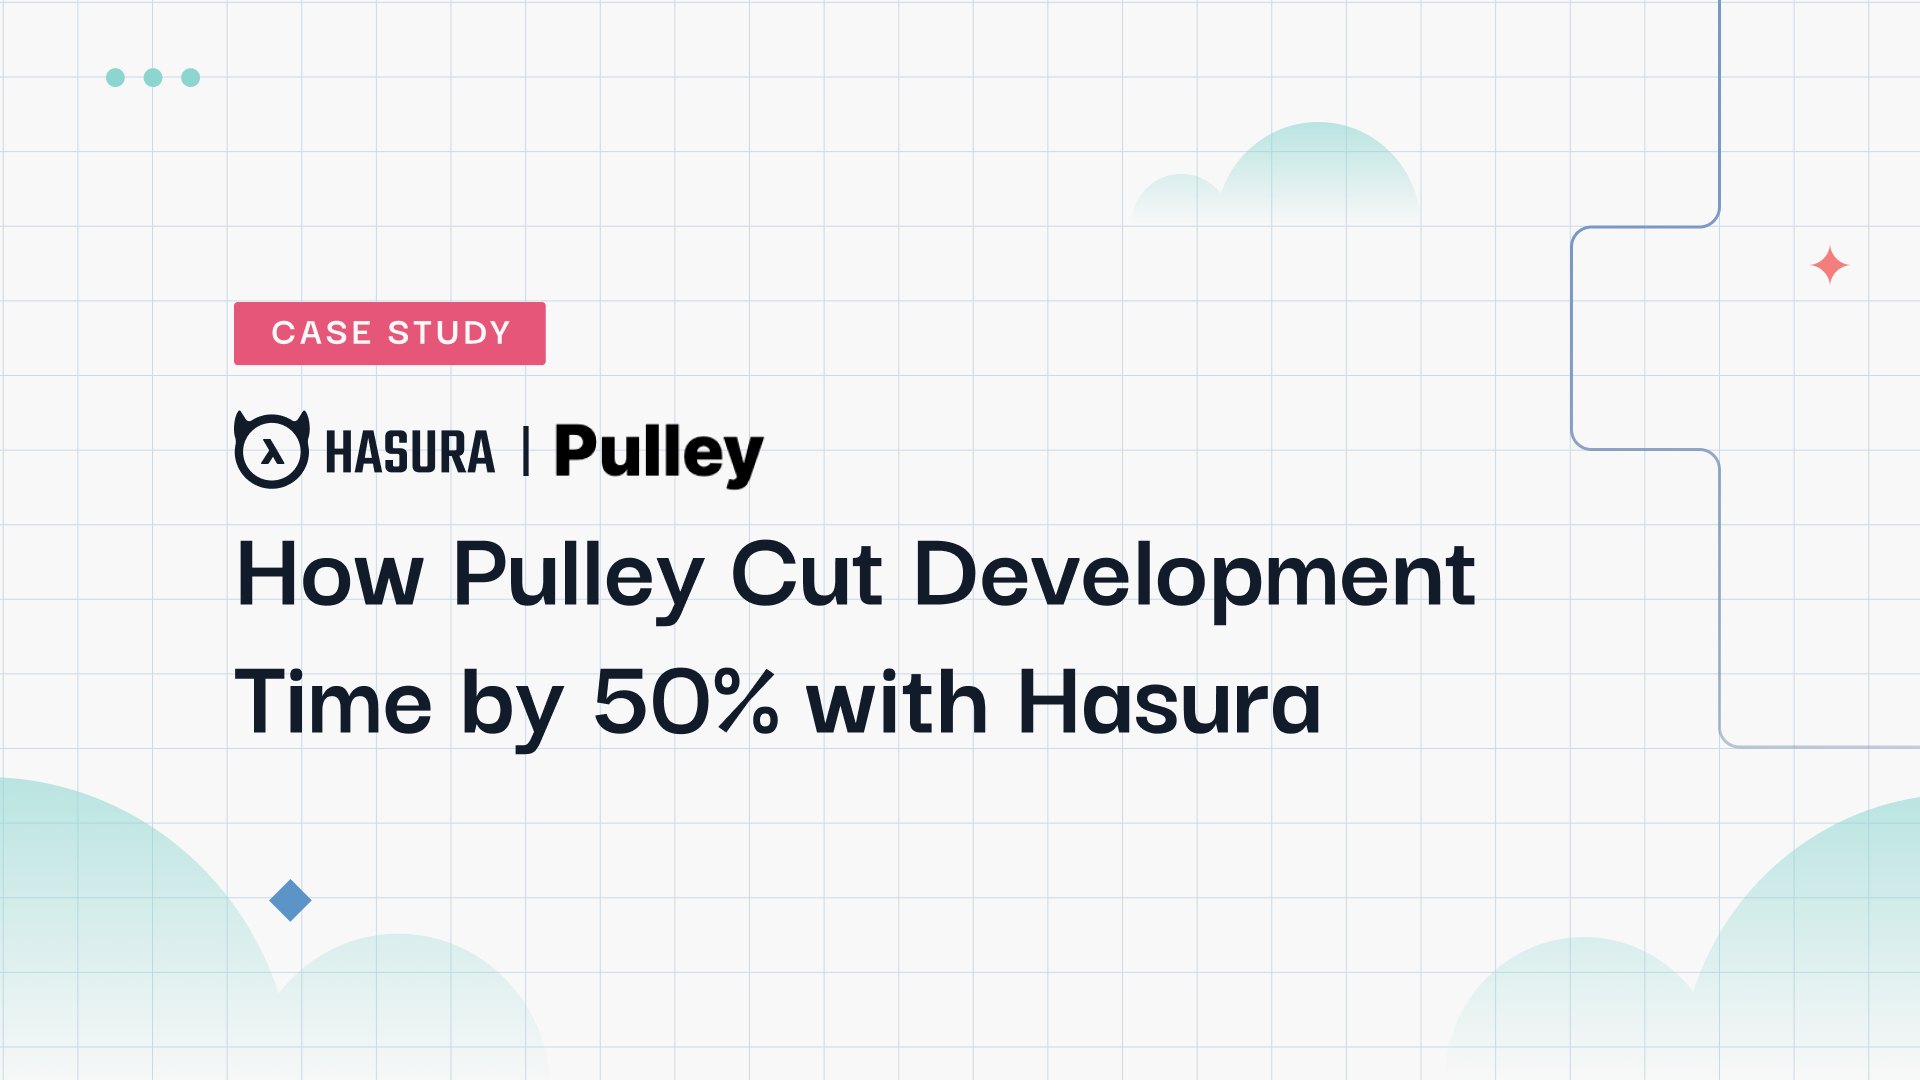 Case Study: How Pulley Cut Development Time by 50% with Hasura